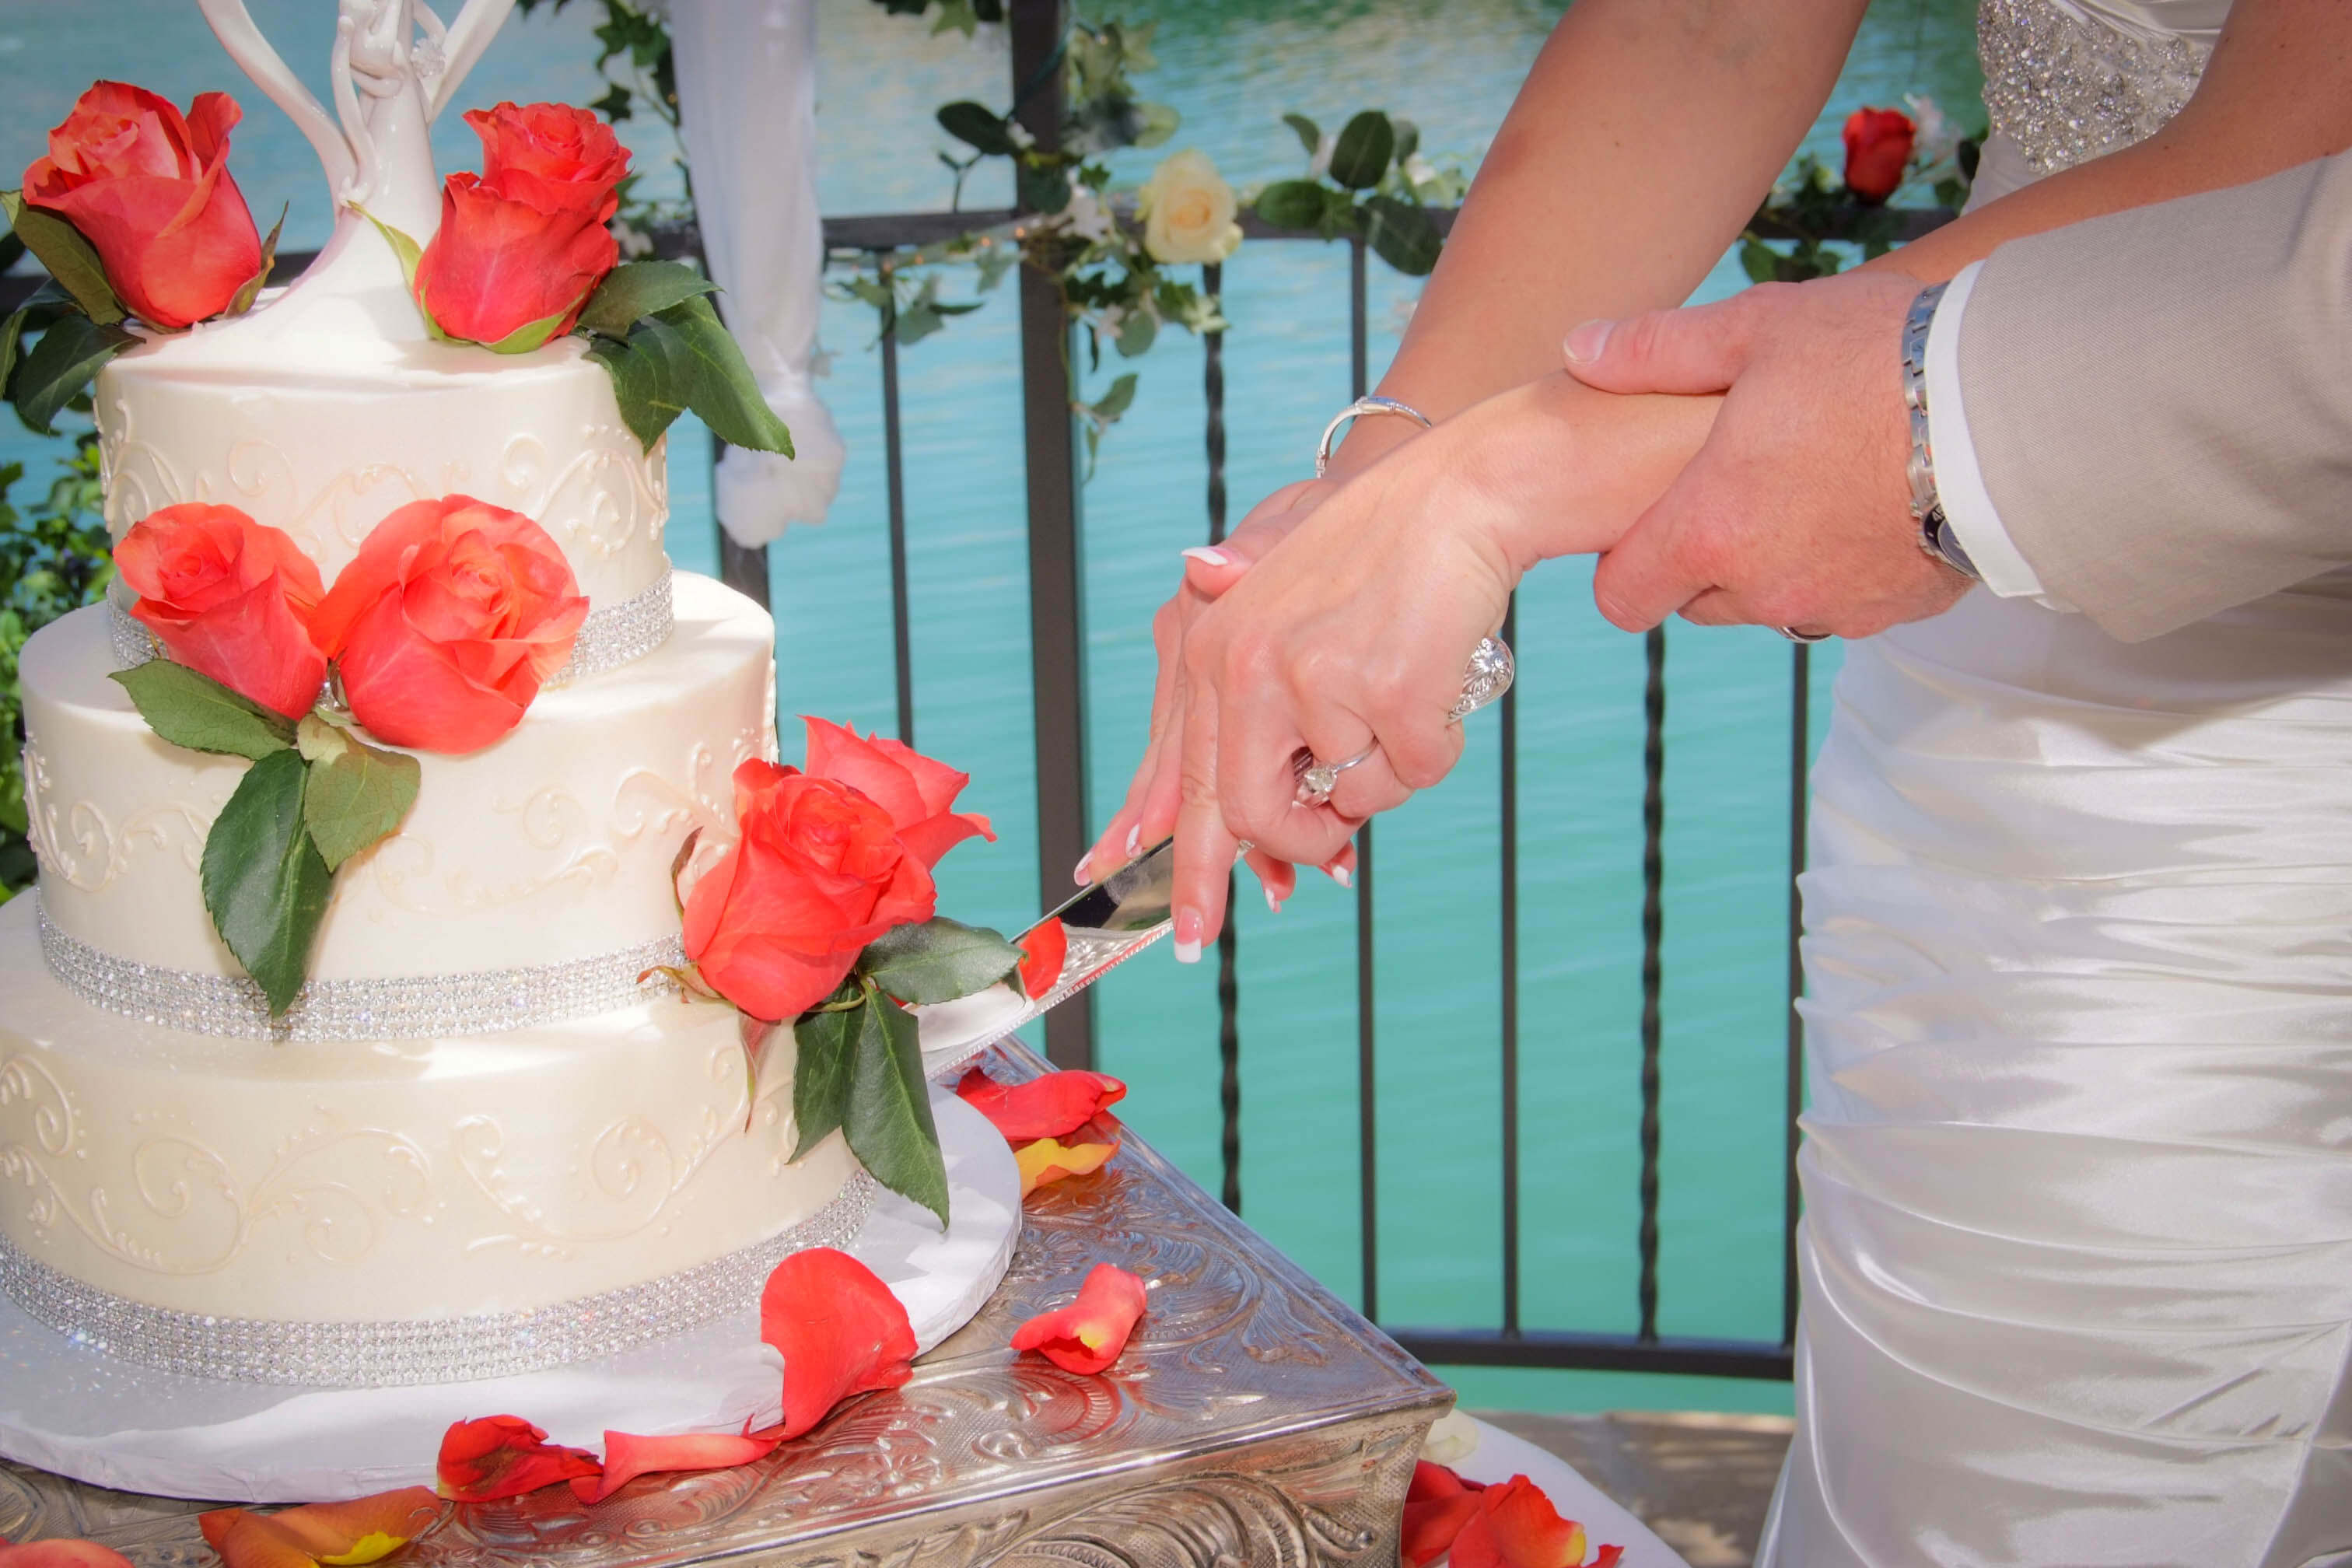 Swan Garden Sapphire All Inclusive Wedding Reception Package Up To 75 Guests Included